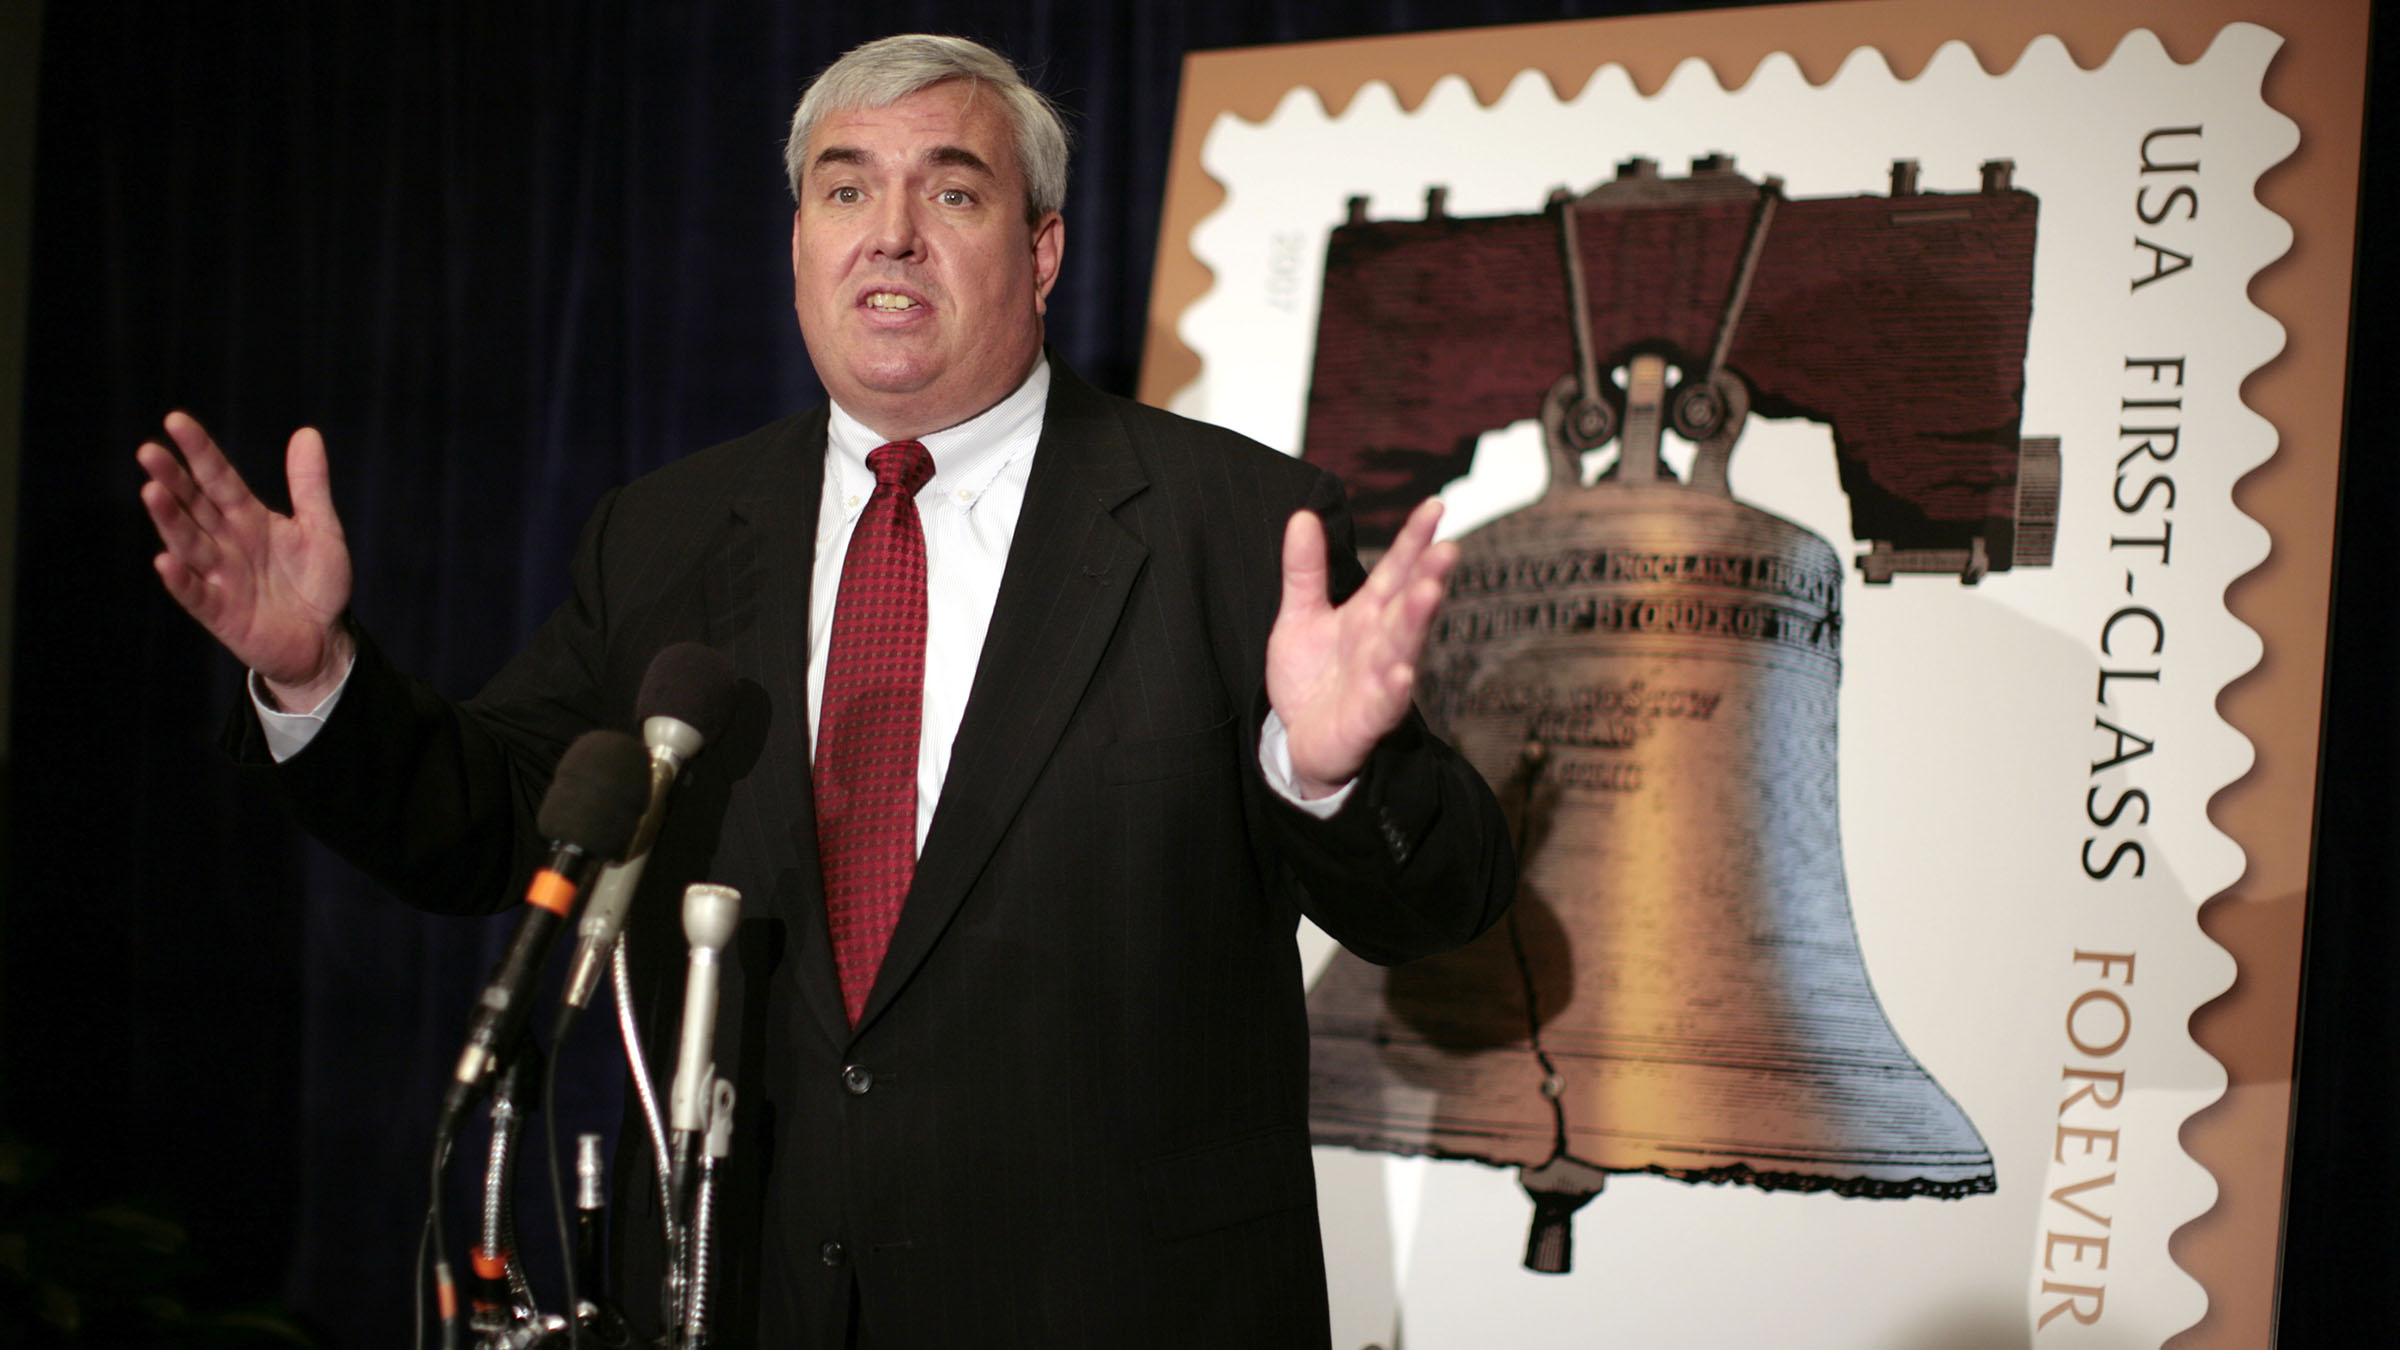 """U.S. Postmaster General John Potter answers a question during a news conference about the """"Forever Stamp"""" in Washington March 26, 2007. The stamp, which will be on sale to the public from April 12, will cost 41 cents and will be good for mailing one-ounce first-class  letters anytime in the future, regardless of price changes. REUTERS/Kevin Lamarque  (UNITED STATES) - RTR1NXX0"""